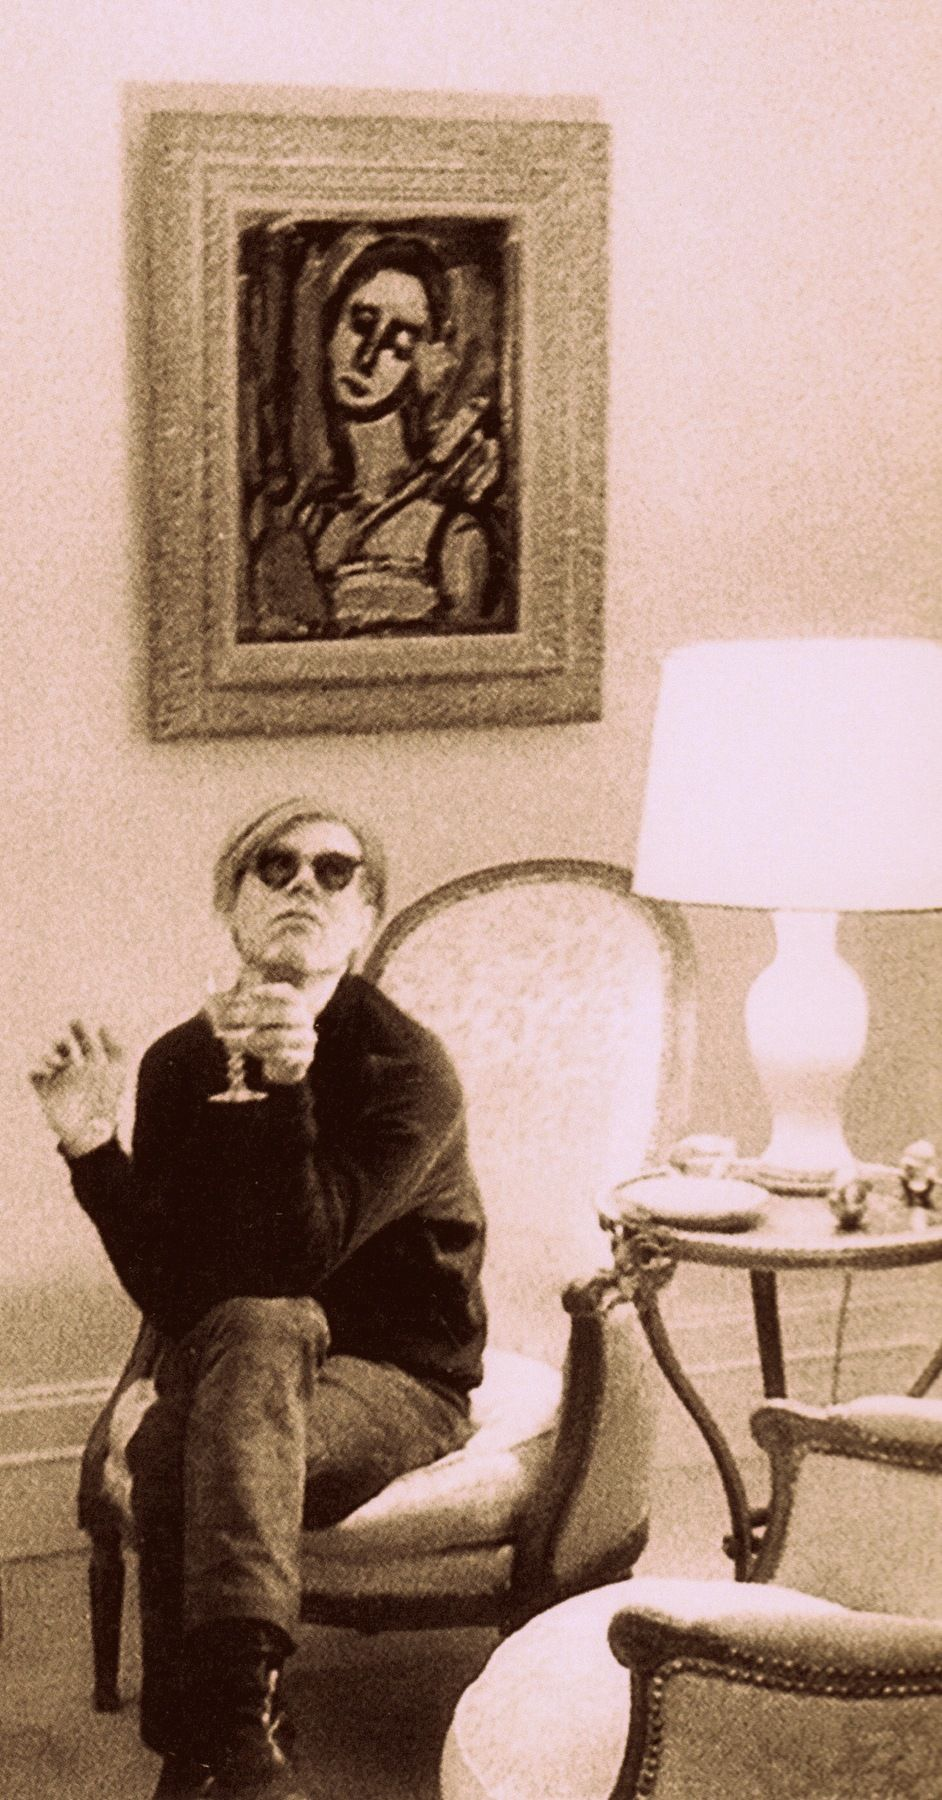 Andy Warhol in Emily Staempfli's apartment (1967) (detail) from Factory Andy Warhol Stephen Shore #andywarhol #thefactory #camp #andywarhol